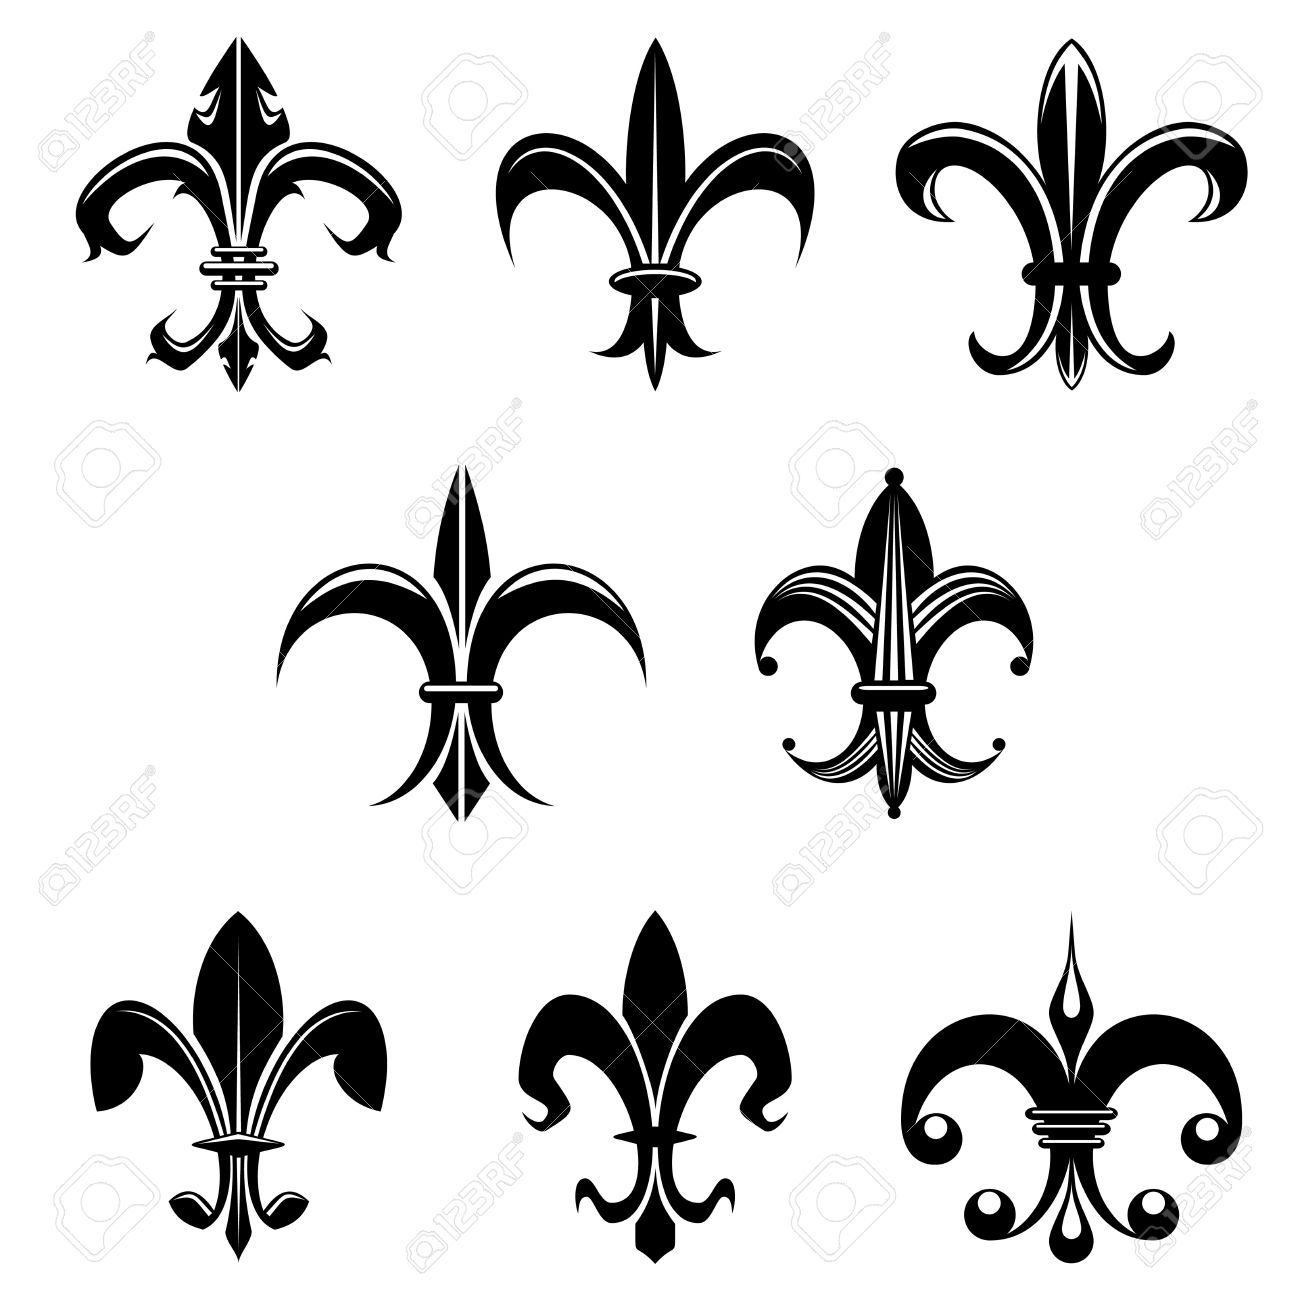 French lily flower stock photos pictures royalty free french french lily flower royal french lily symbols for design and decorate dhlflorist Images